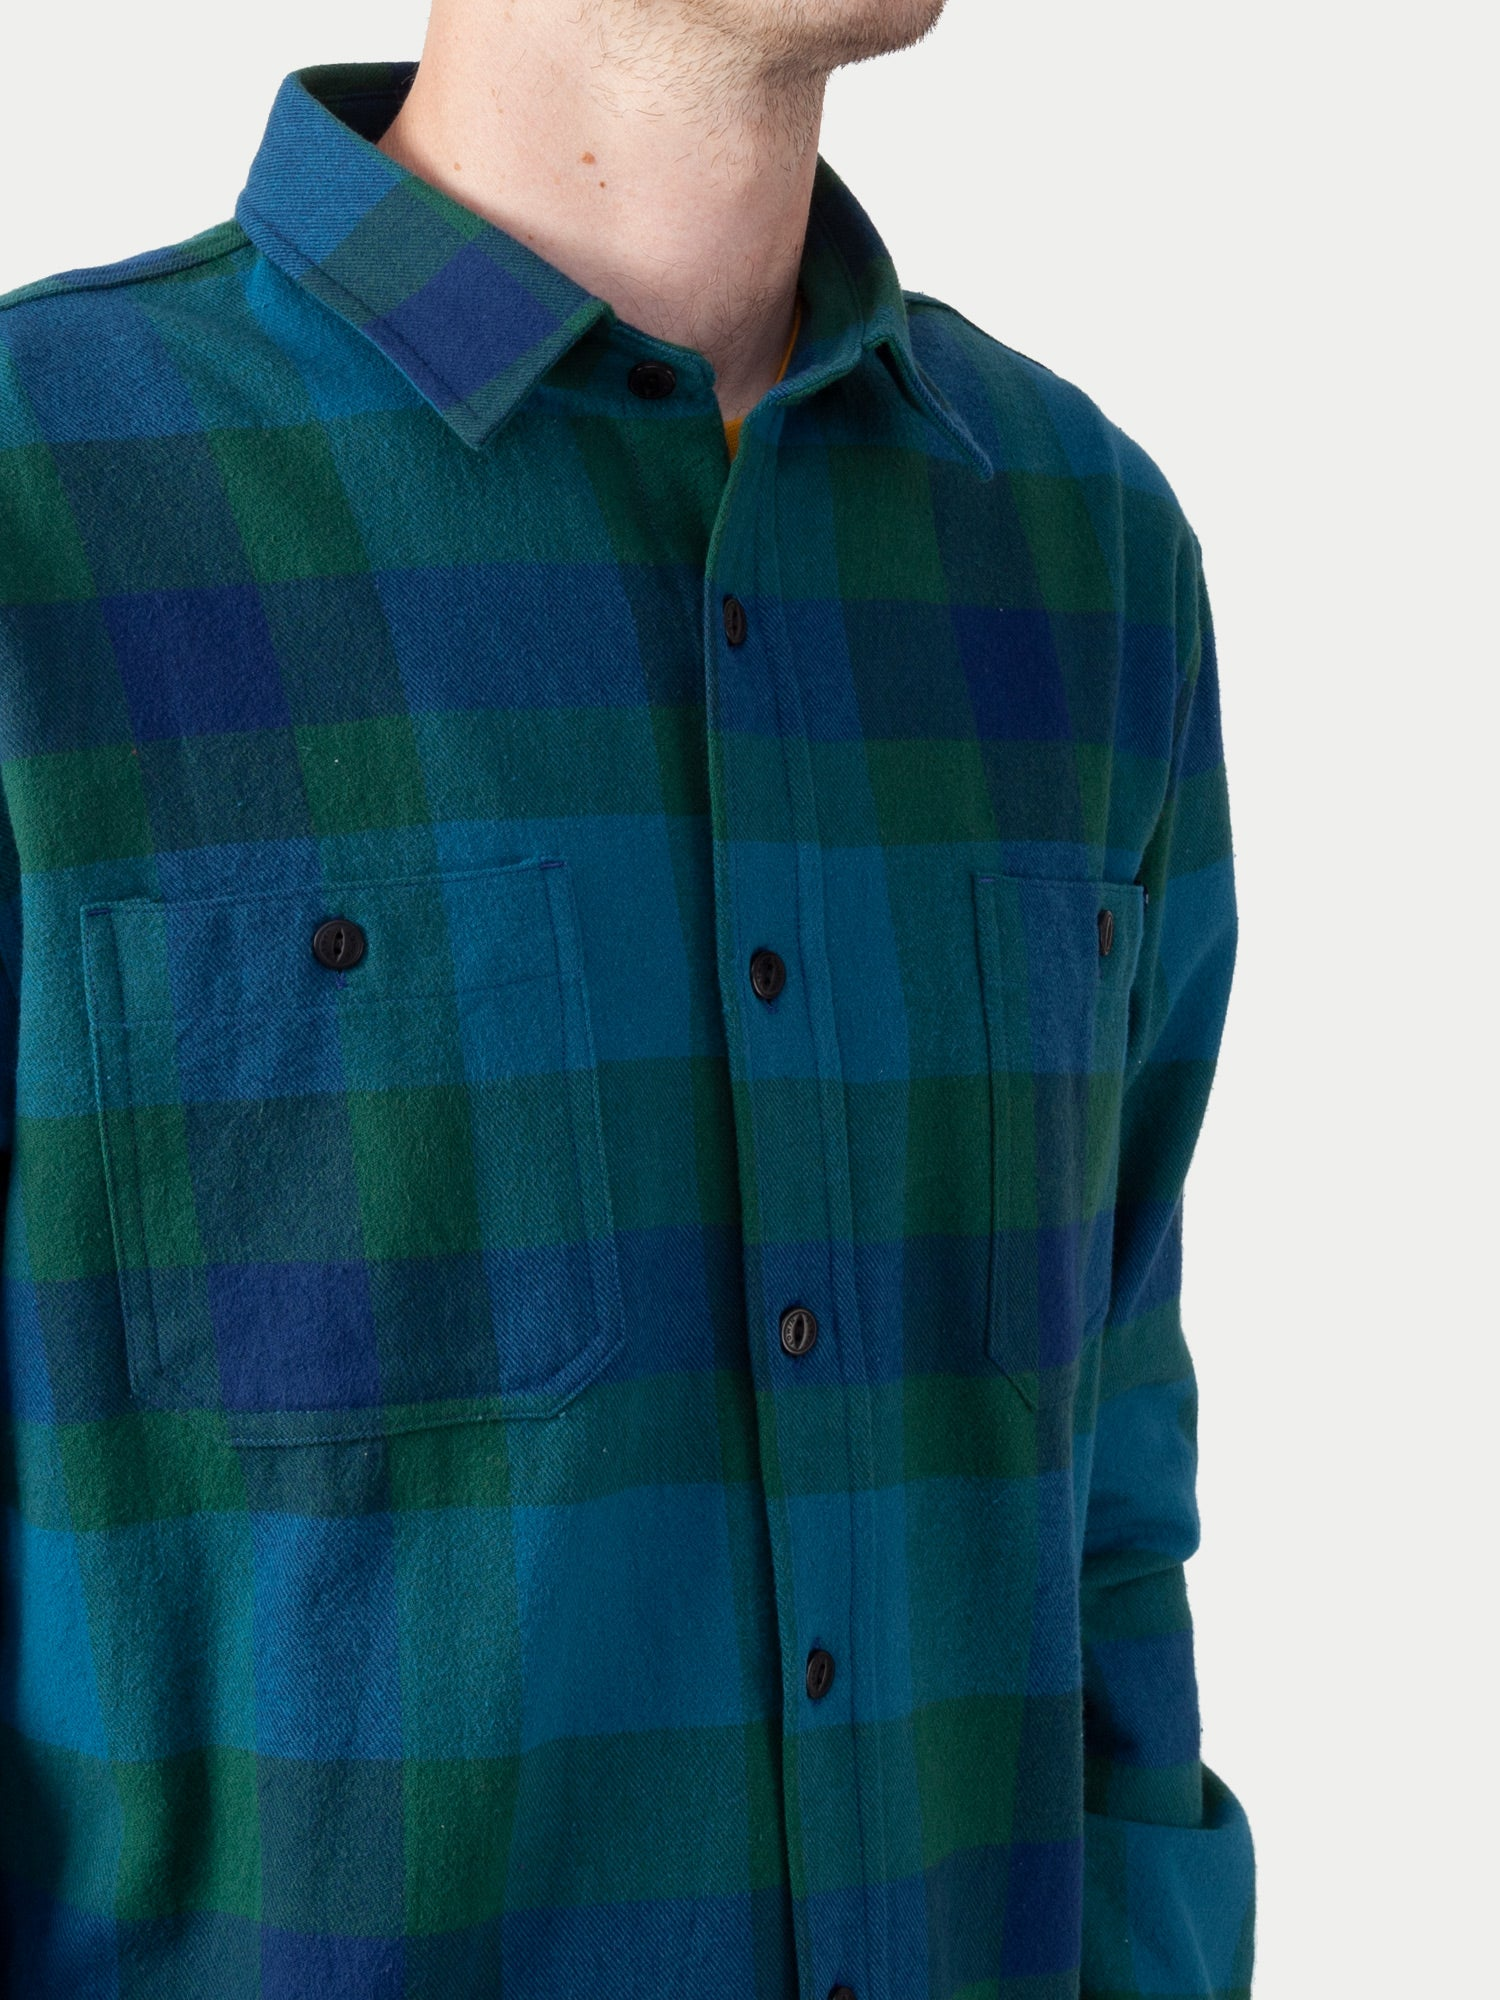 Edwin Labour Shirt (Dress Blue & Dark Green) 1